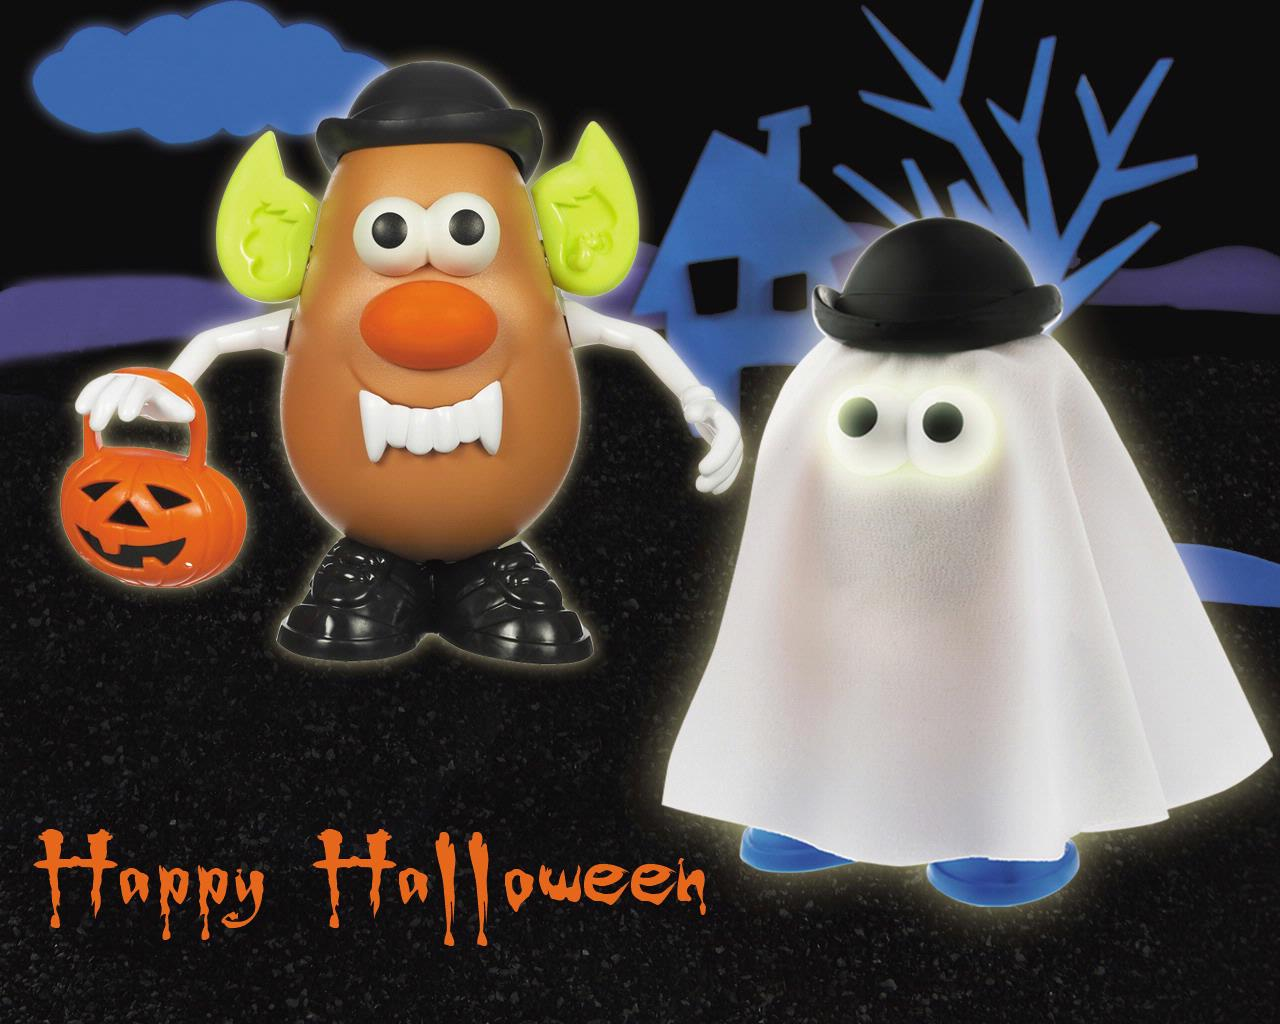 Cartoon Halloween Wallpaper 2012 So Funny Wallpaper For